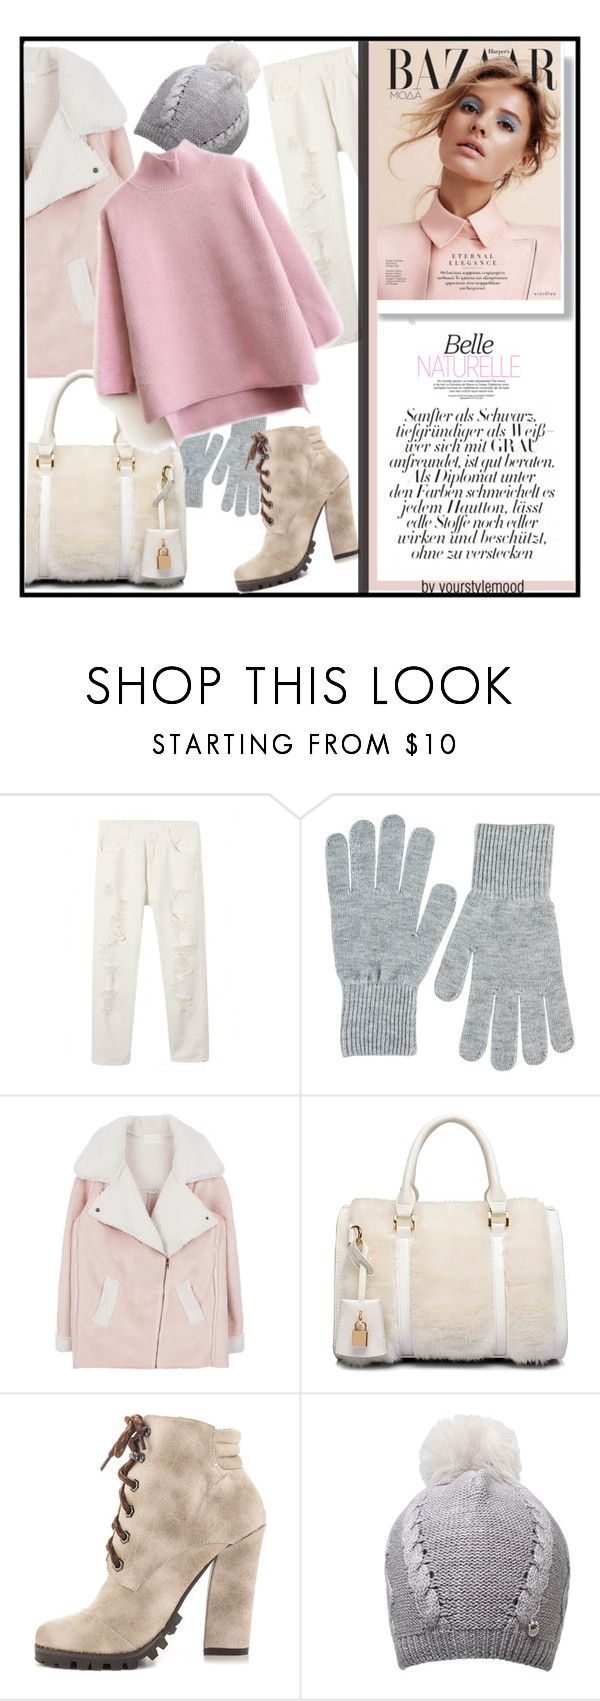 """""""Special day"""" by yourstylemood ❤ liked on Polyvore featuring NLY Accessories, Michael Antonio, UGG Australia, women's clothing, women's fashion, women, female, woman, misses and juniors"""